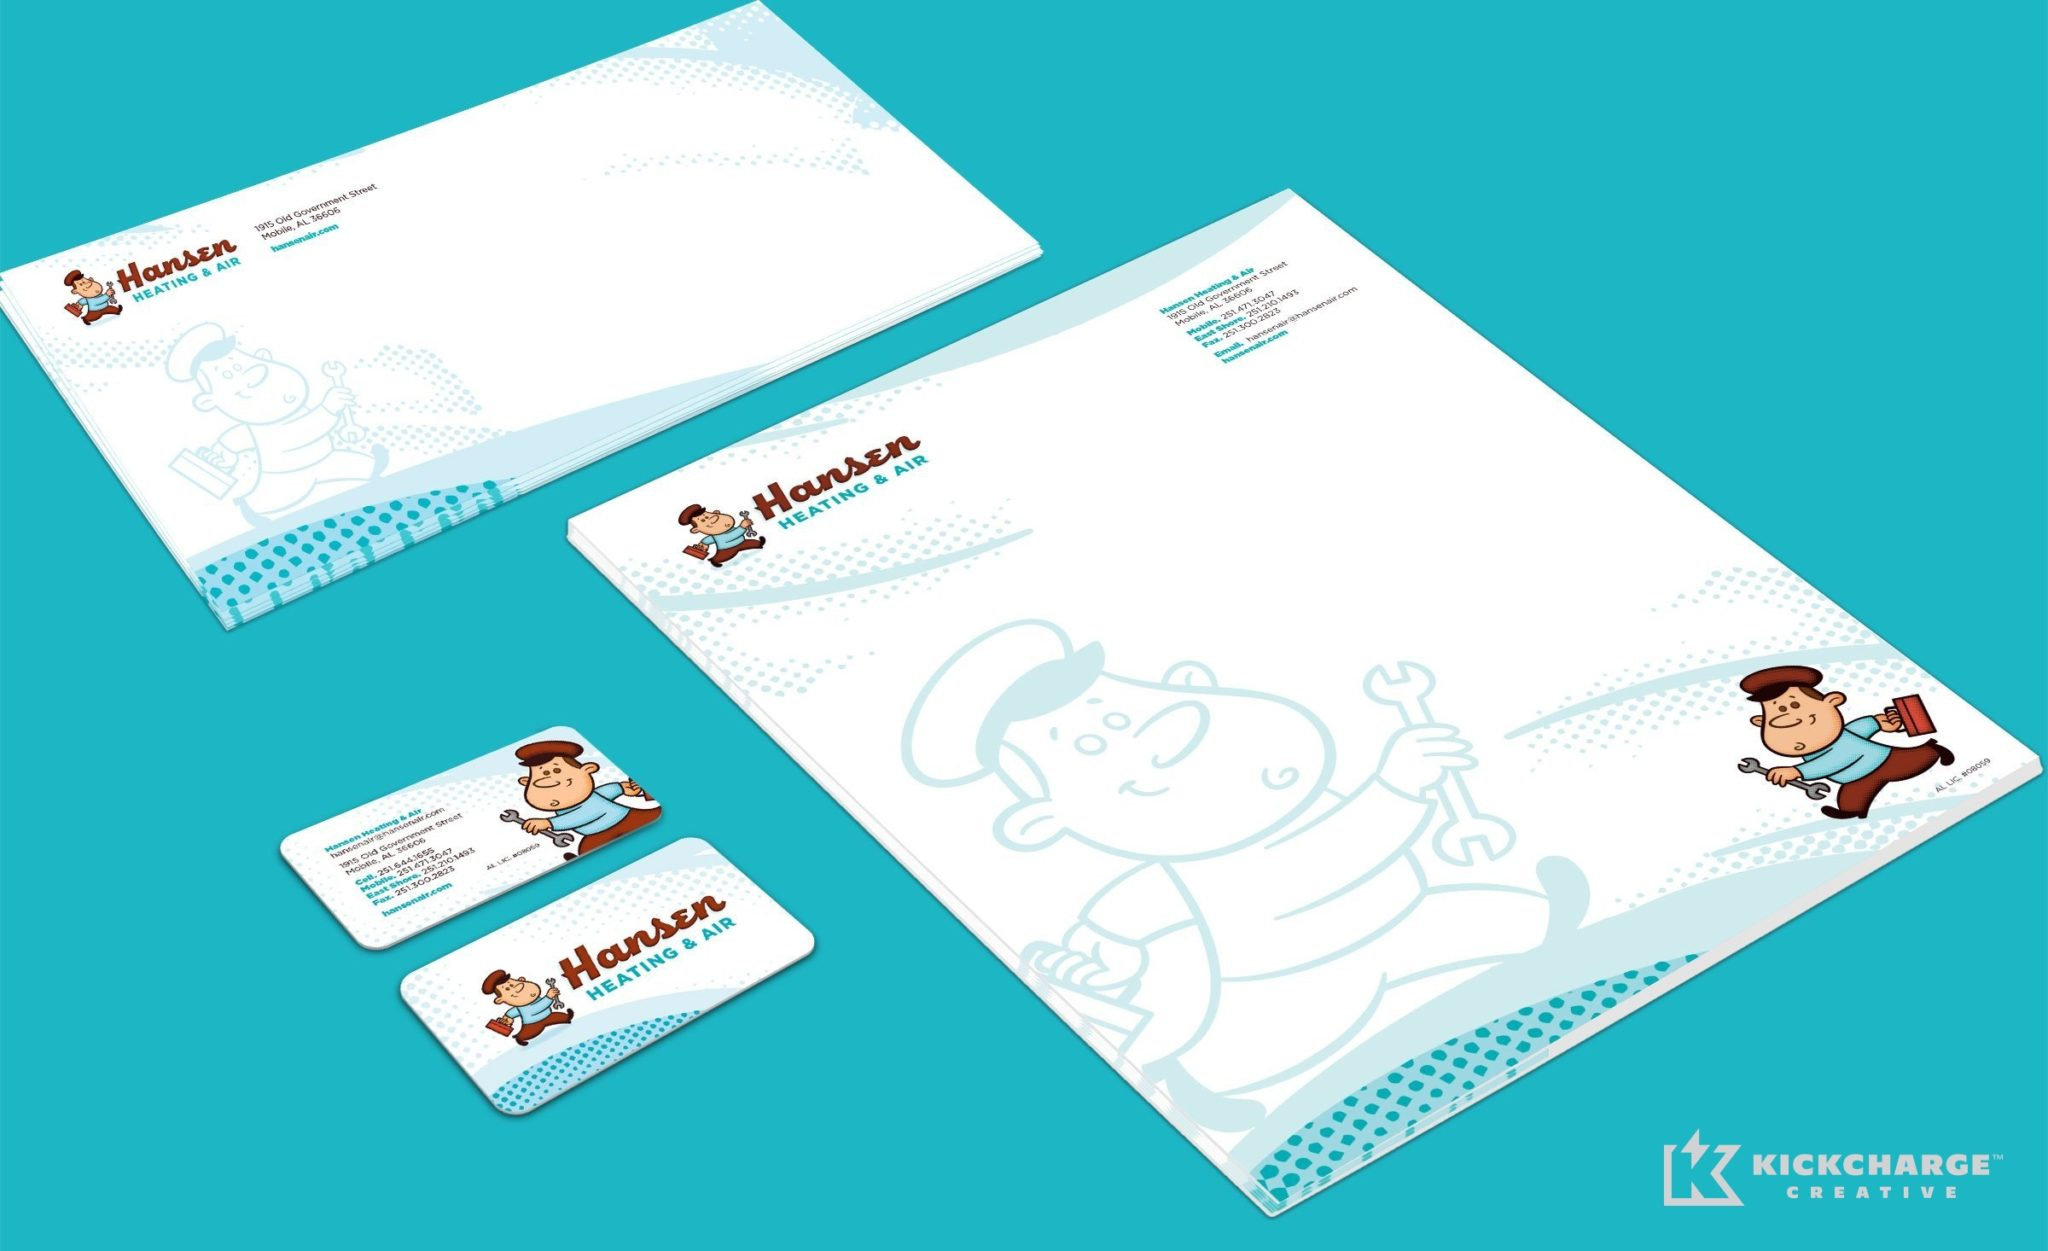 Stationery design for Hansen Heating & Air.